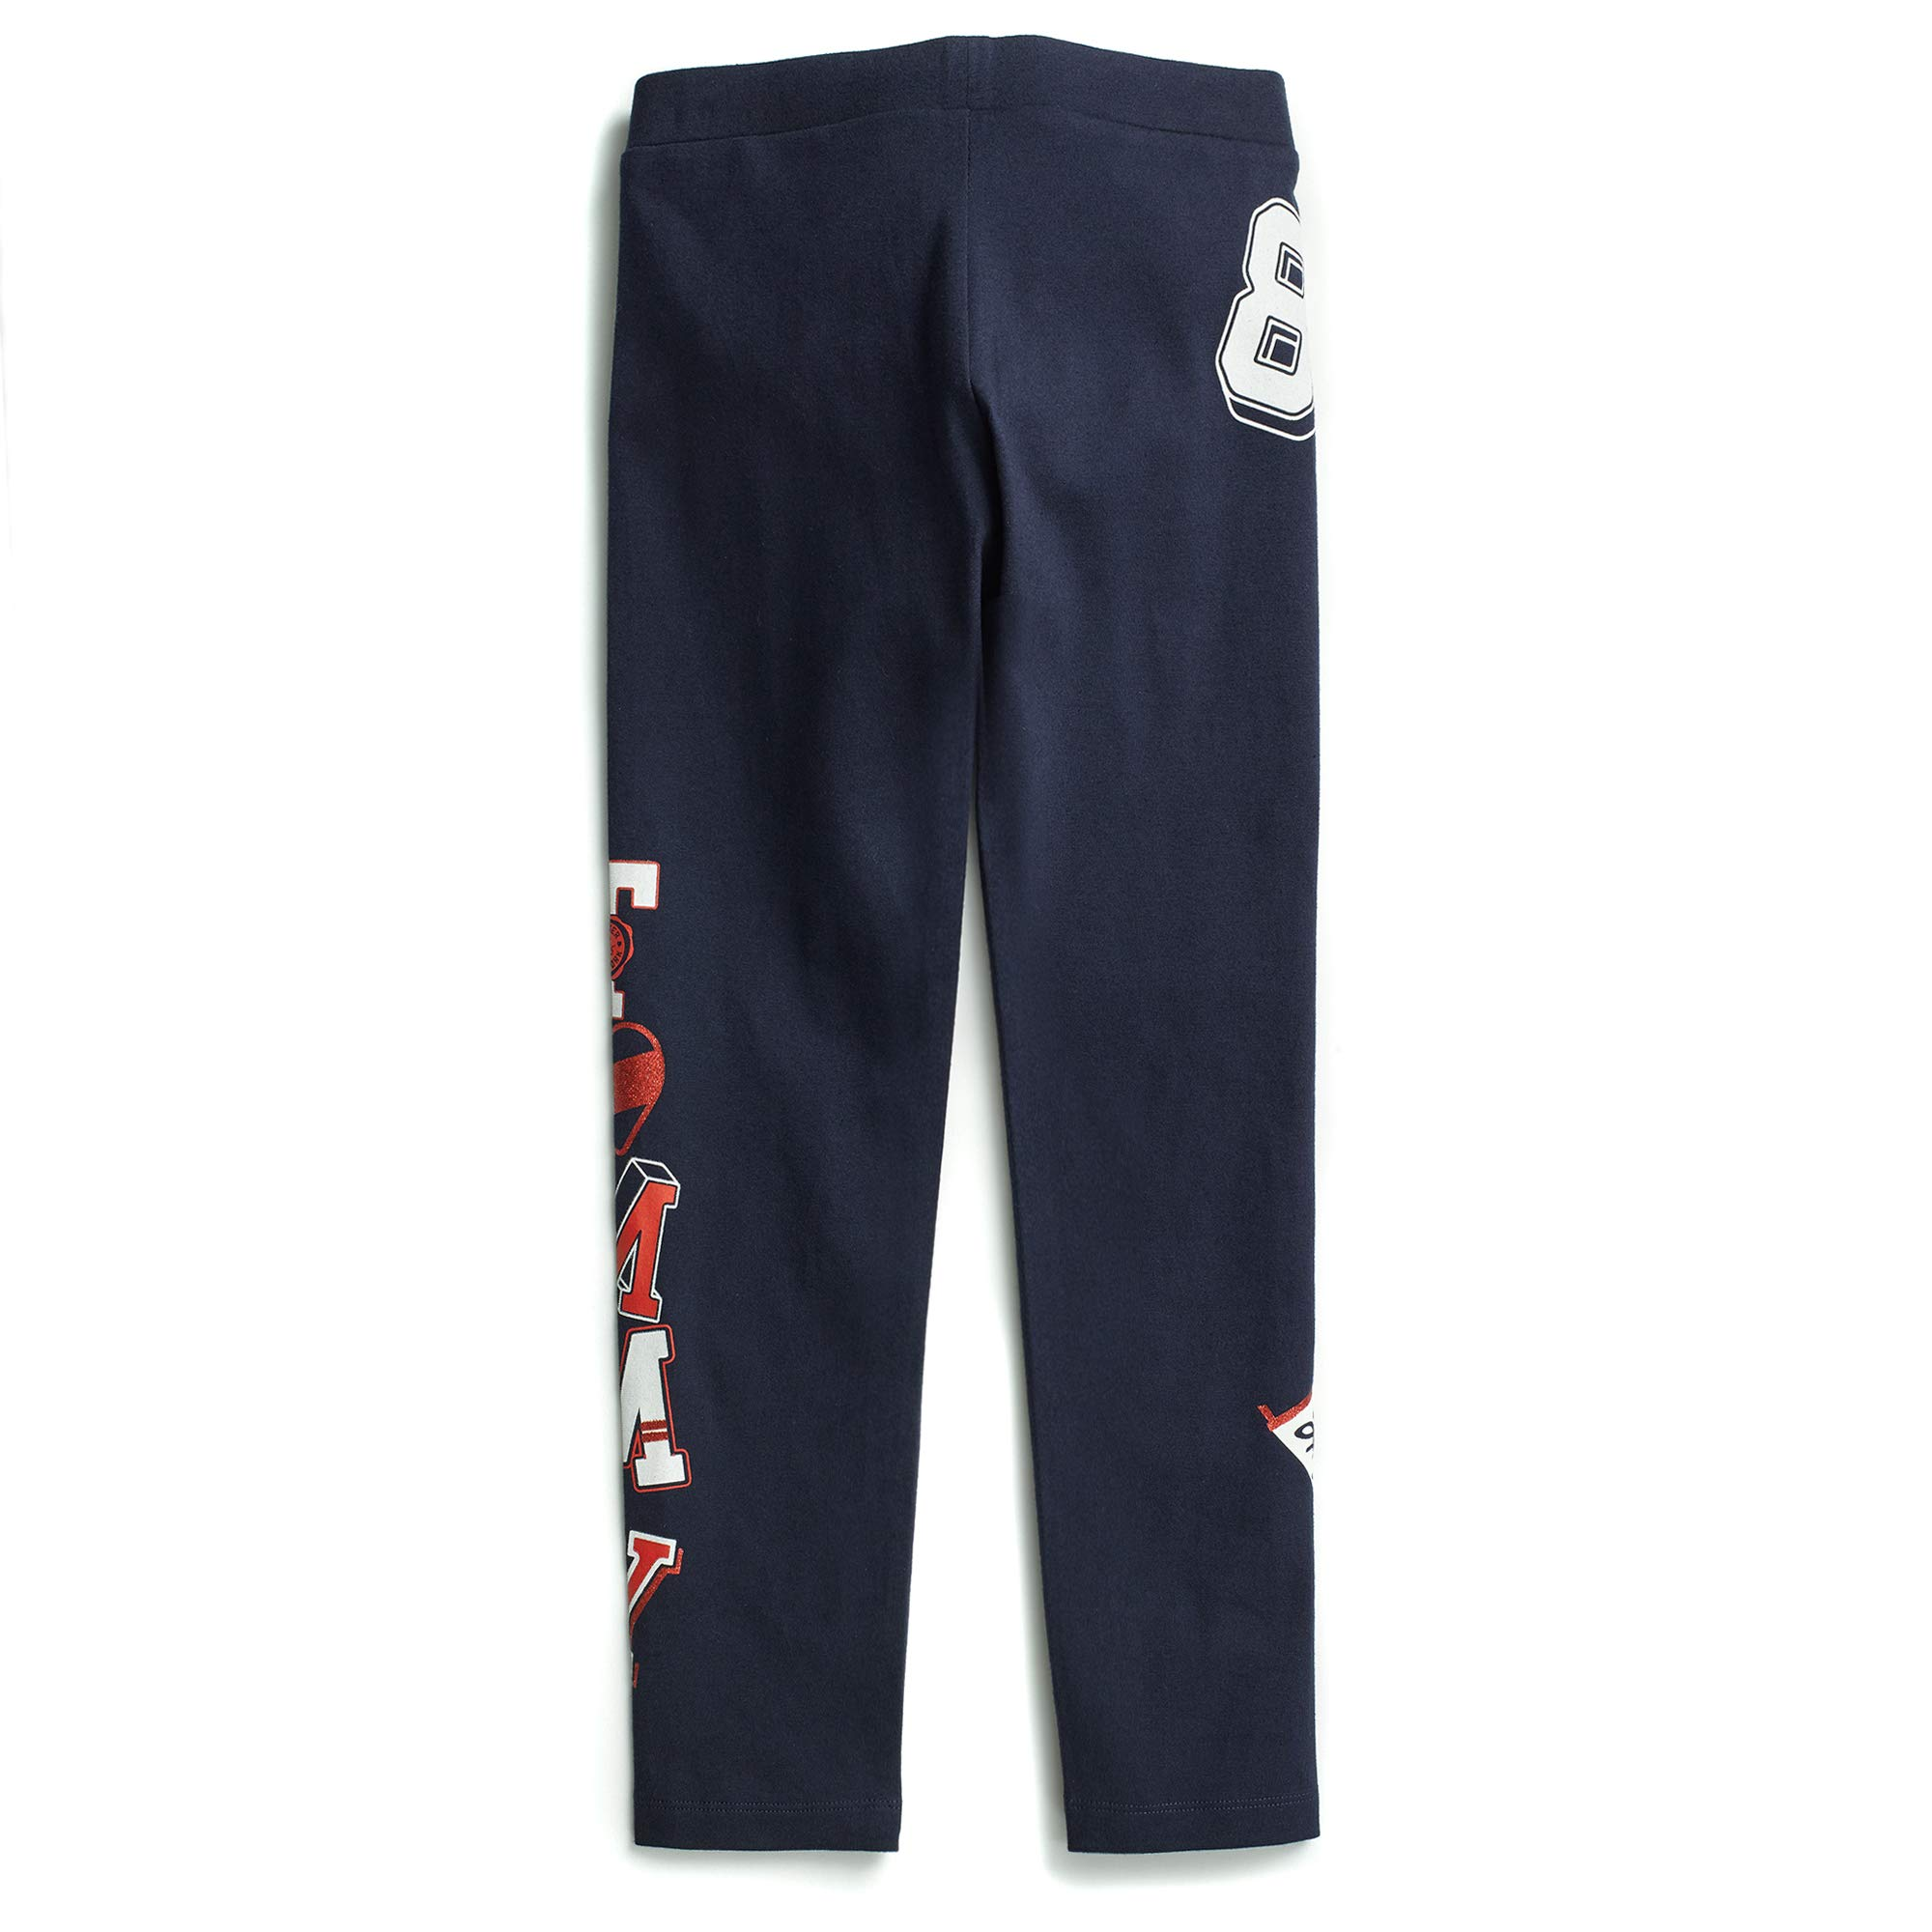 Tommy Hilfiger Girls' Adaptive Leggings with Elastic Waist, evening blue X-Small by Tommy Hilfiger (Image #3)